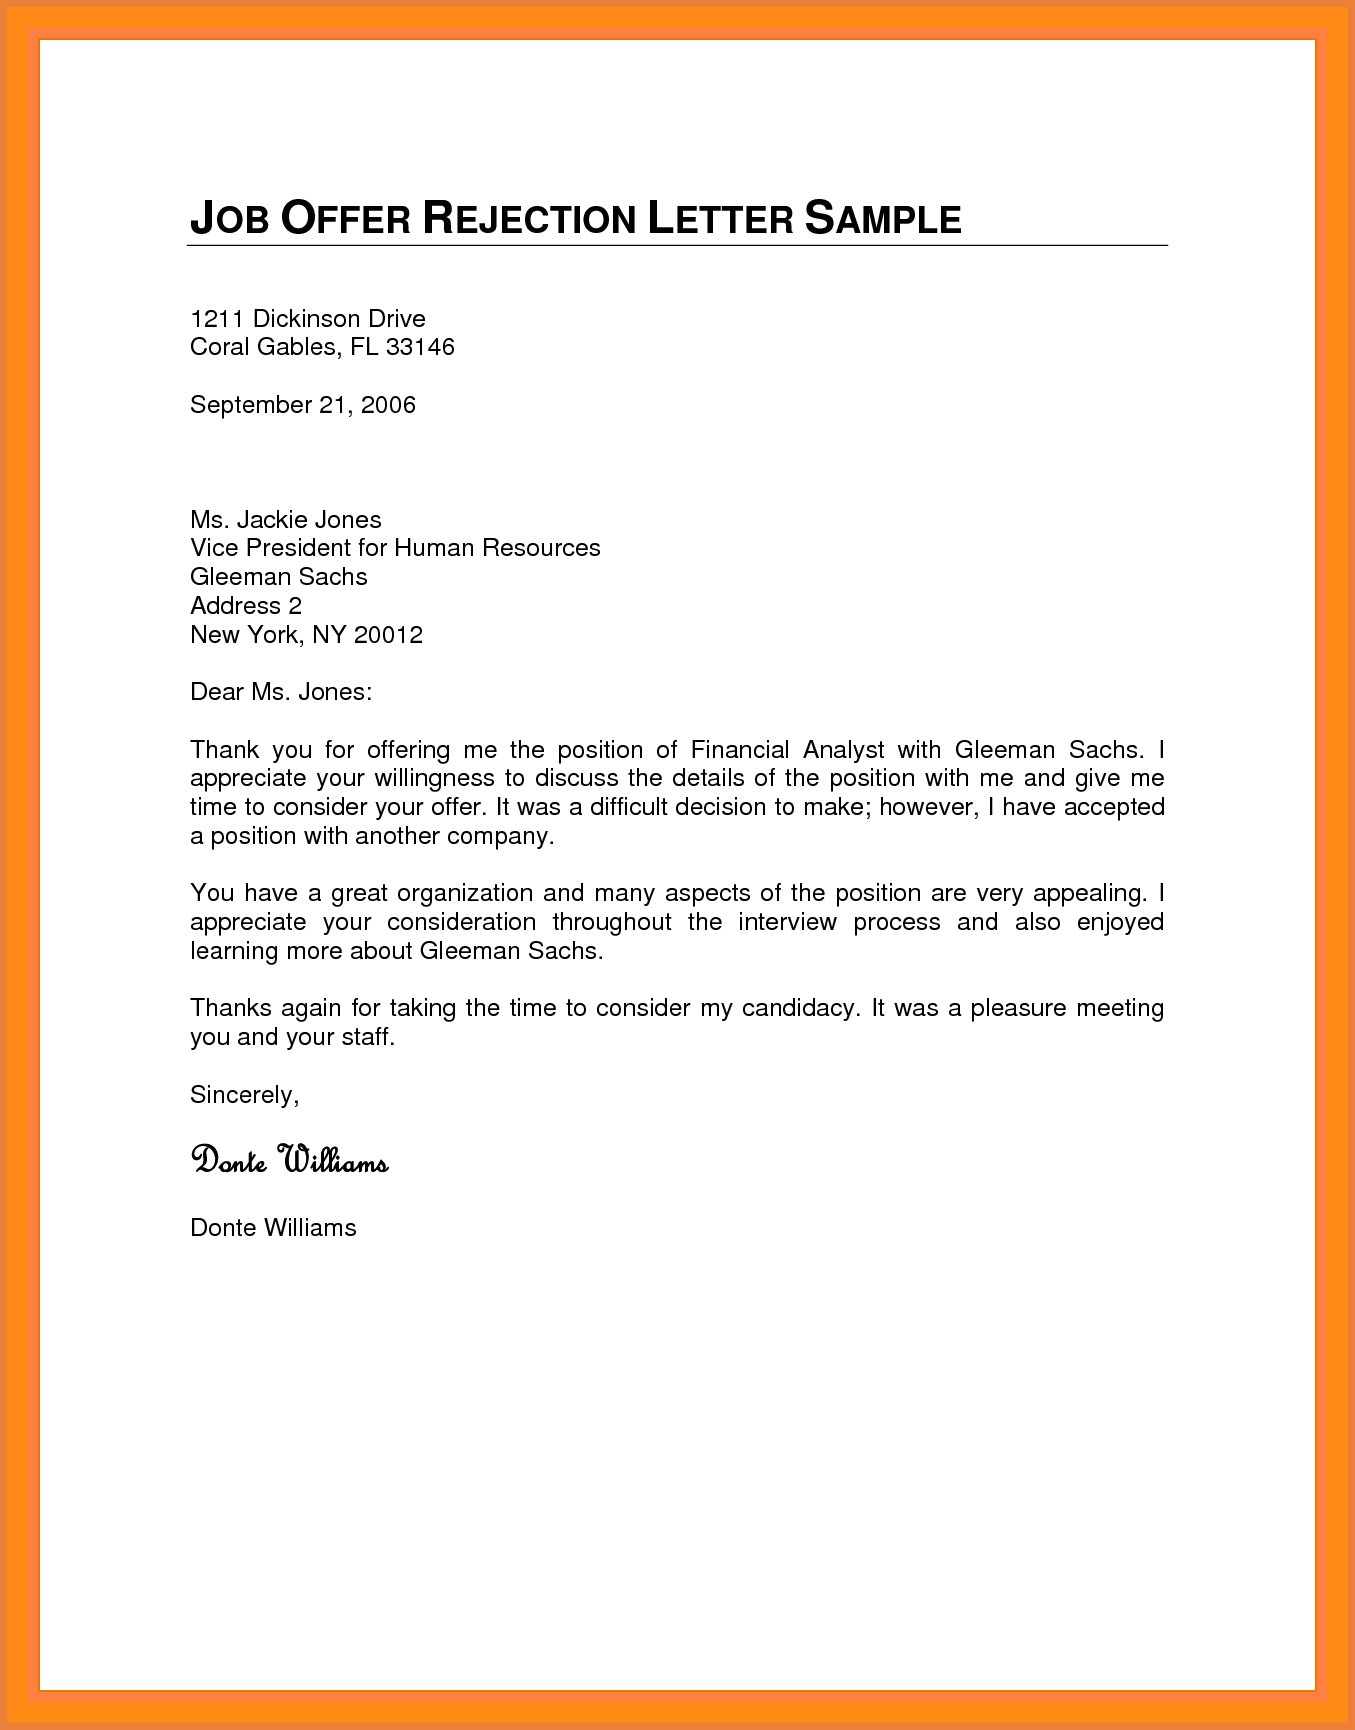 Job Offer Decline Letter Template Samples Letter Cover Templates